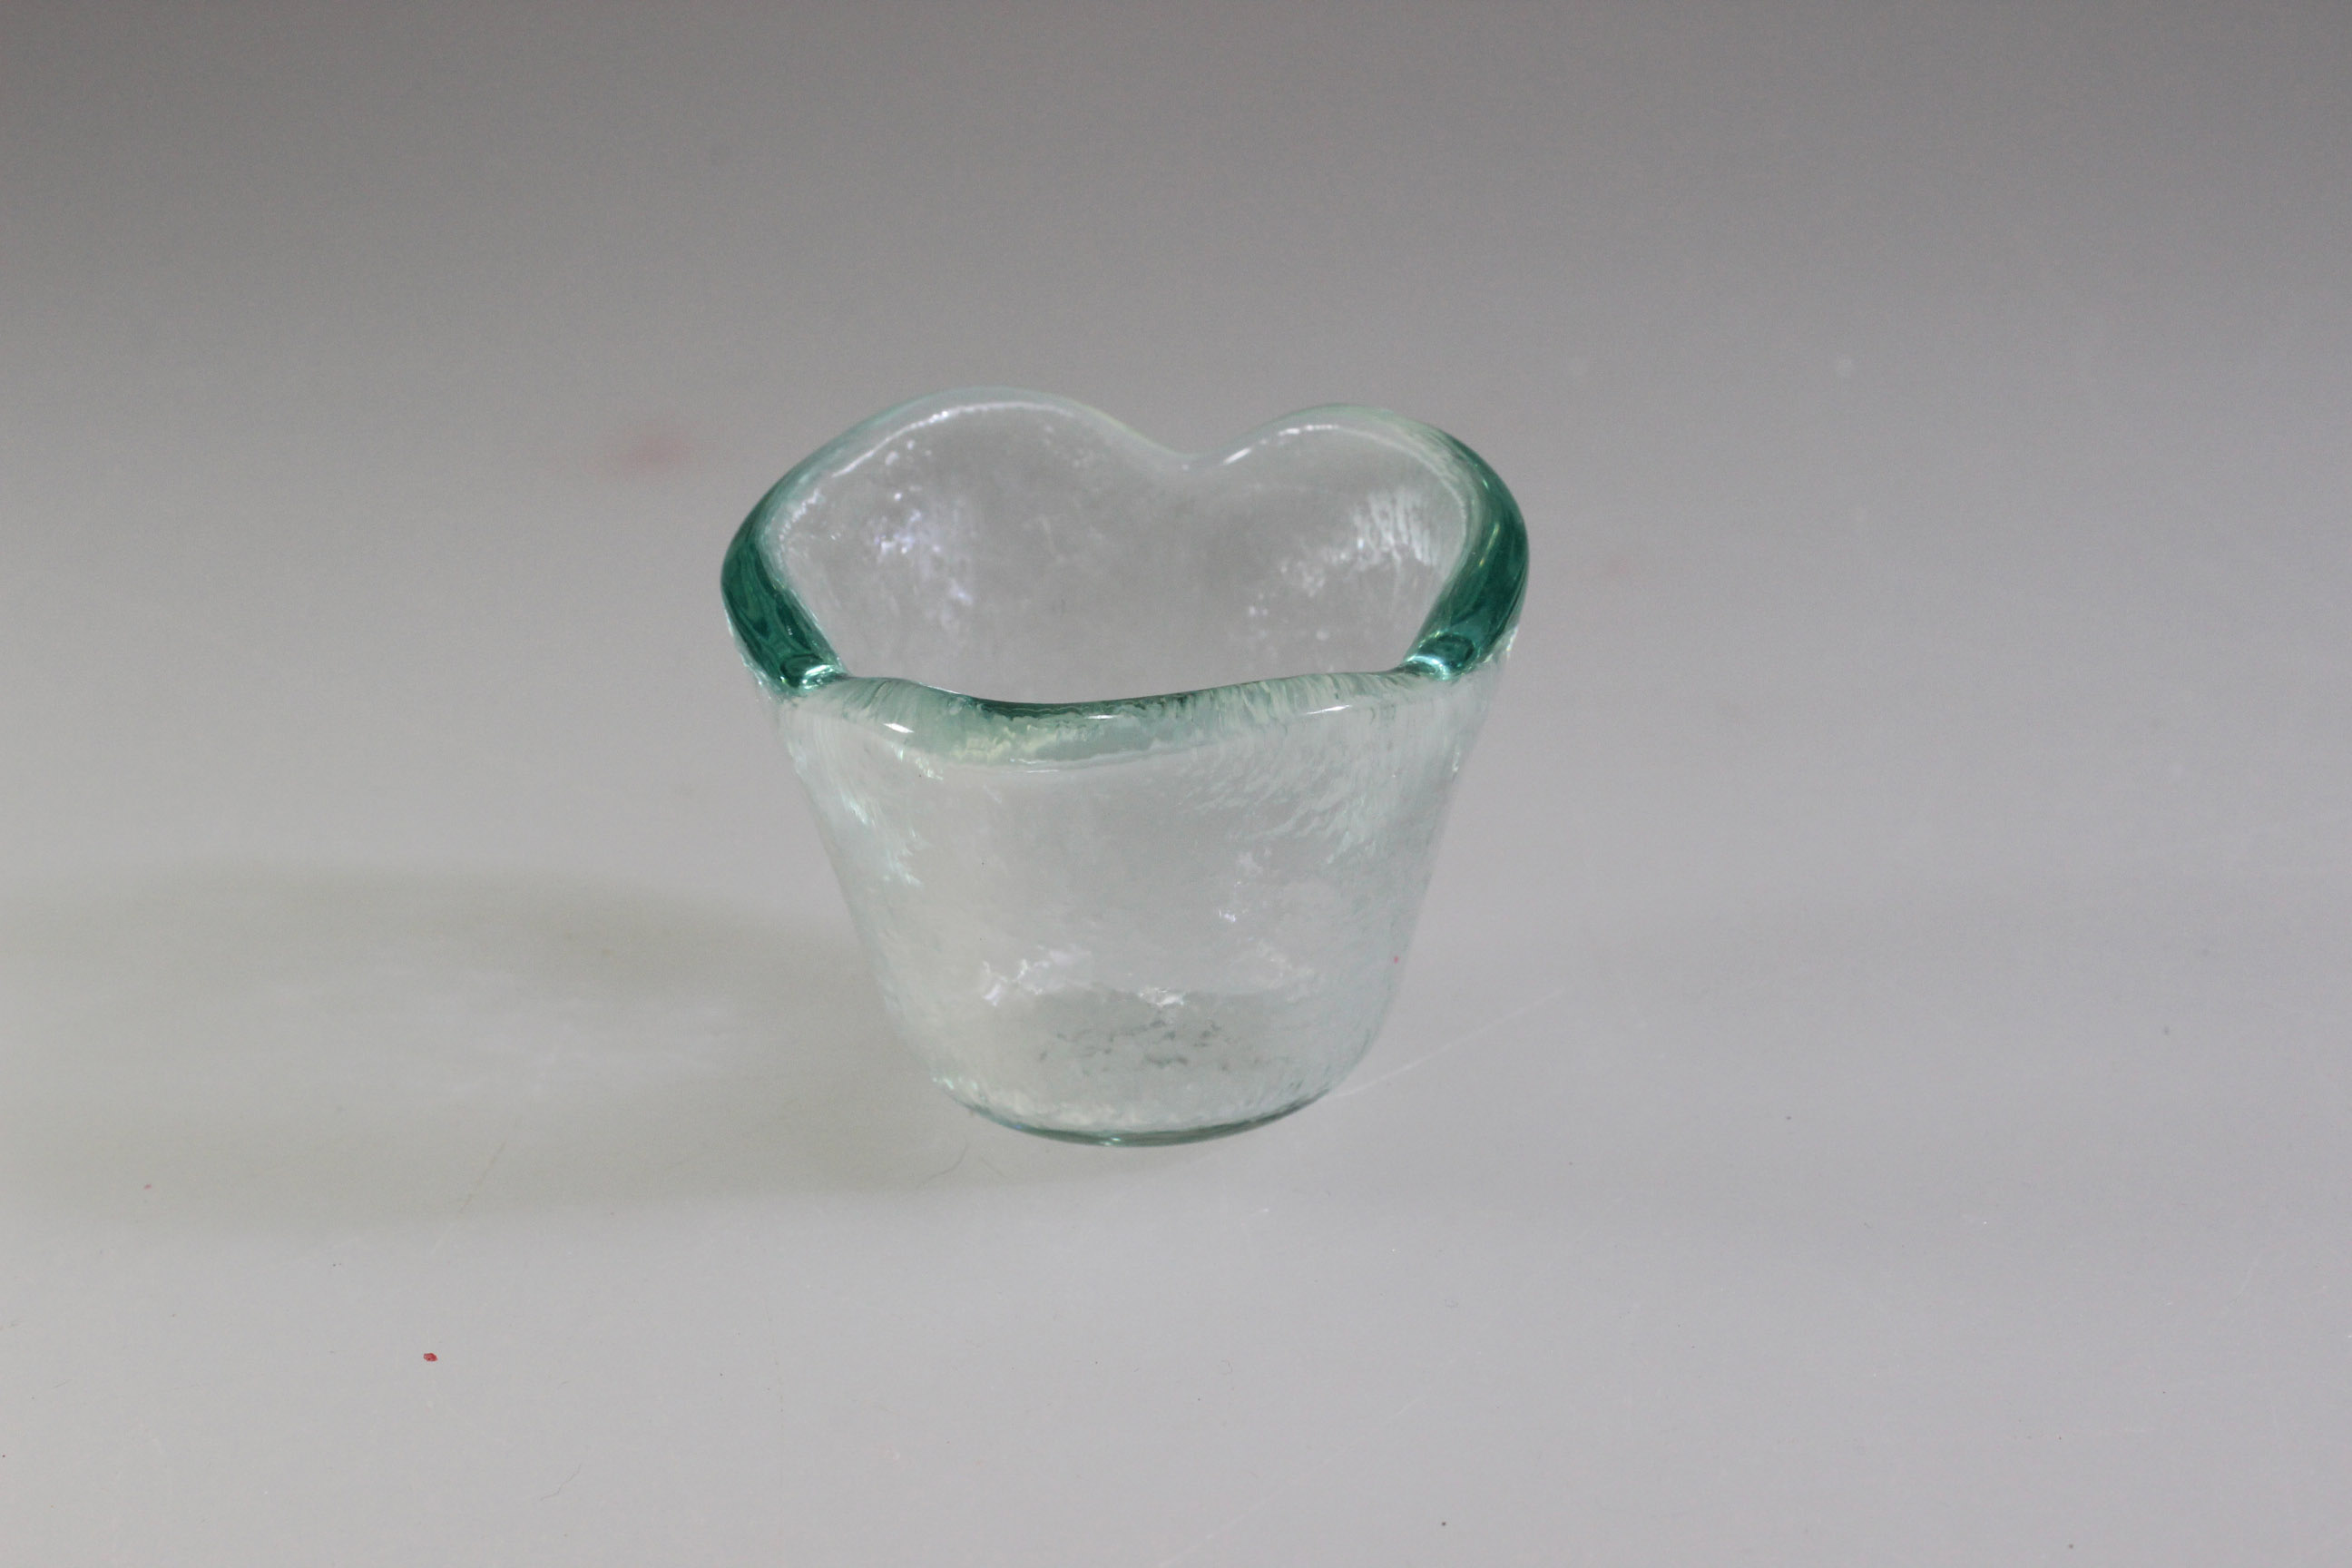 SOYA BOWL CLEAR 6cm DIA / 4.5cm DEEP (6)